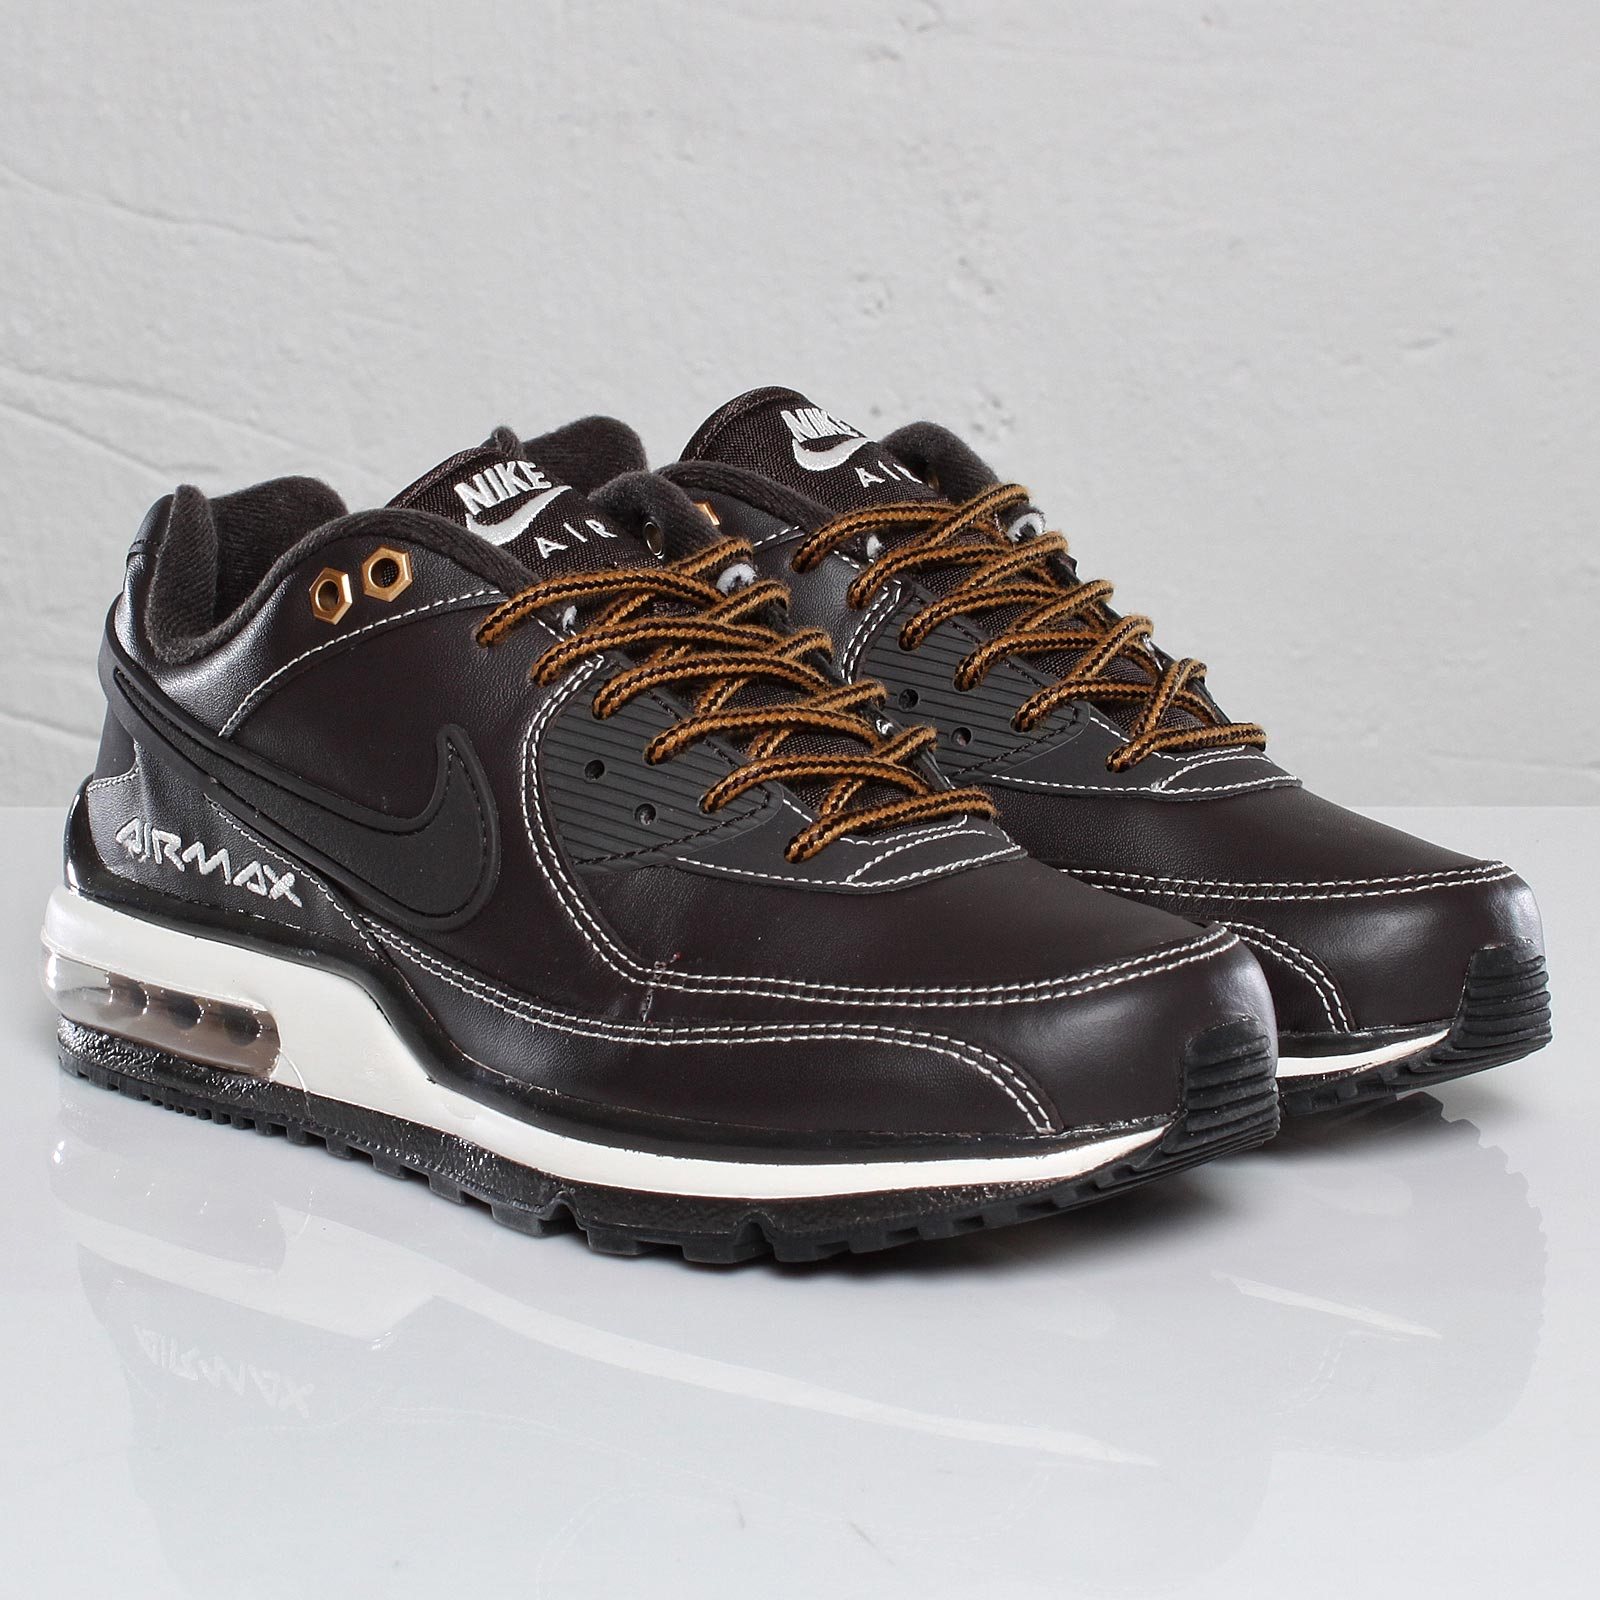 nike air max ltd ii plus